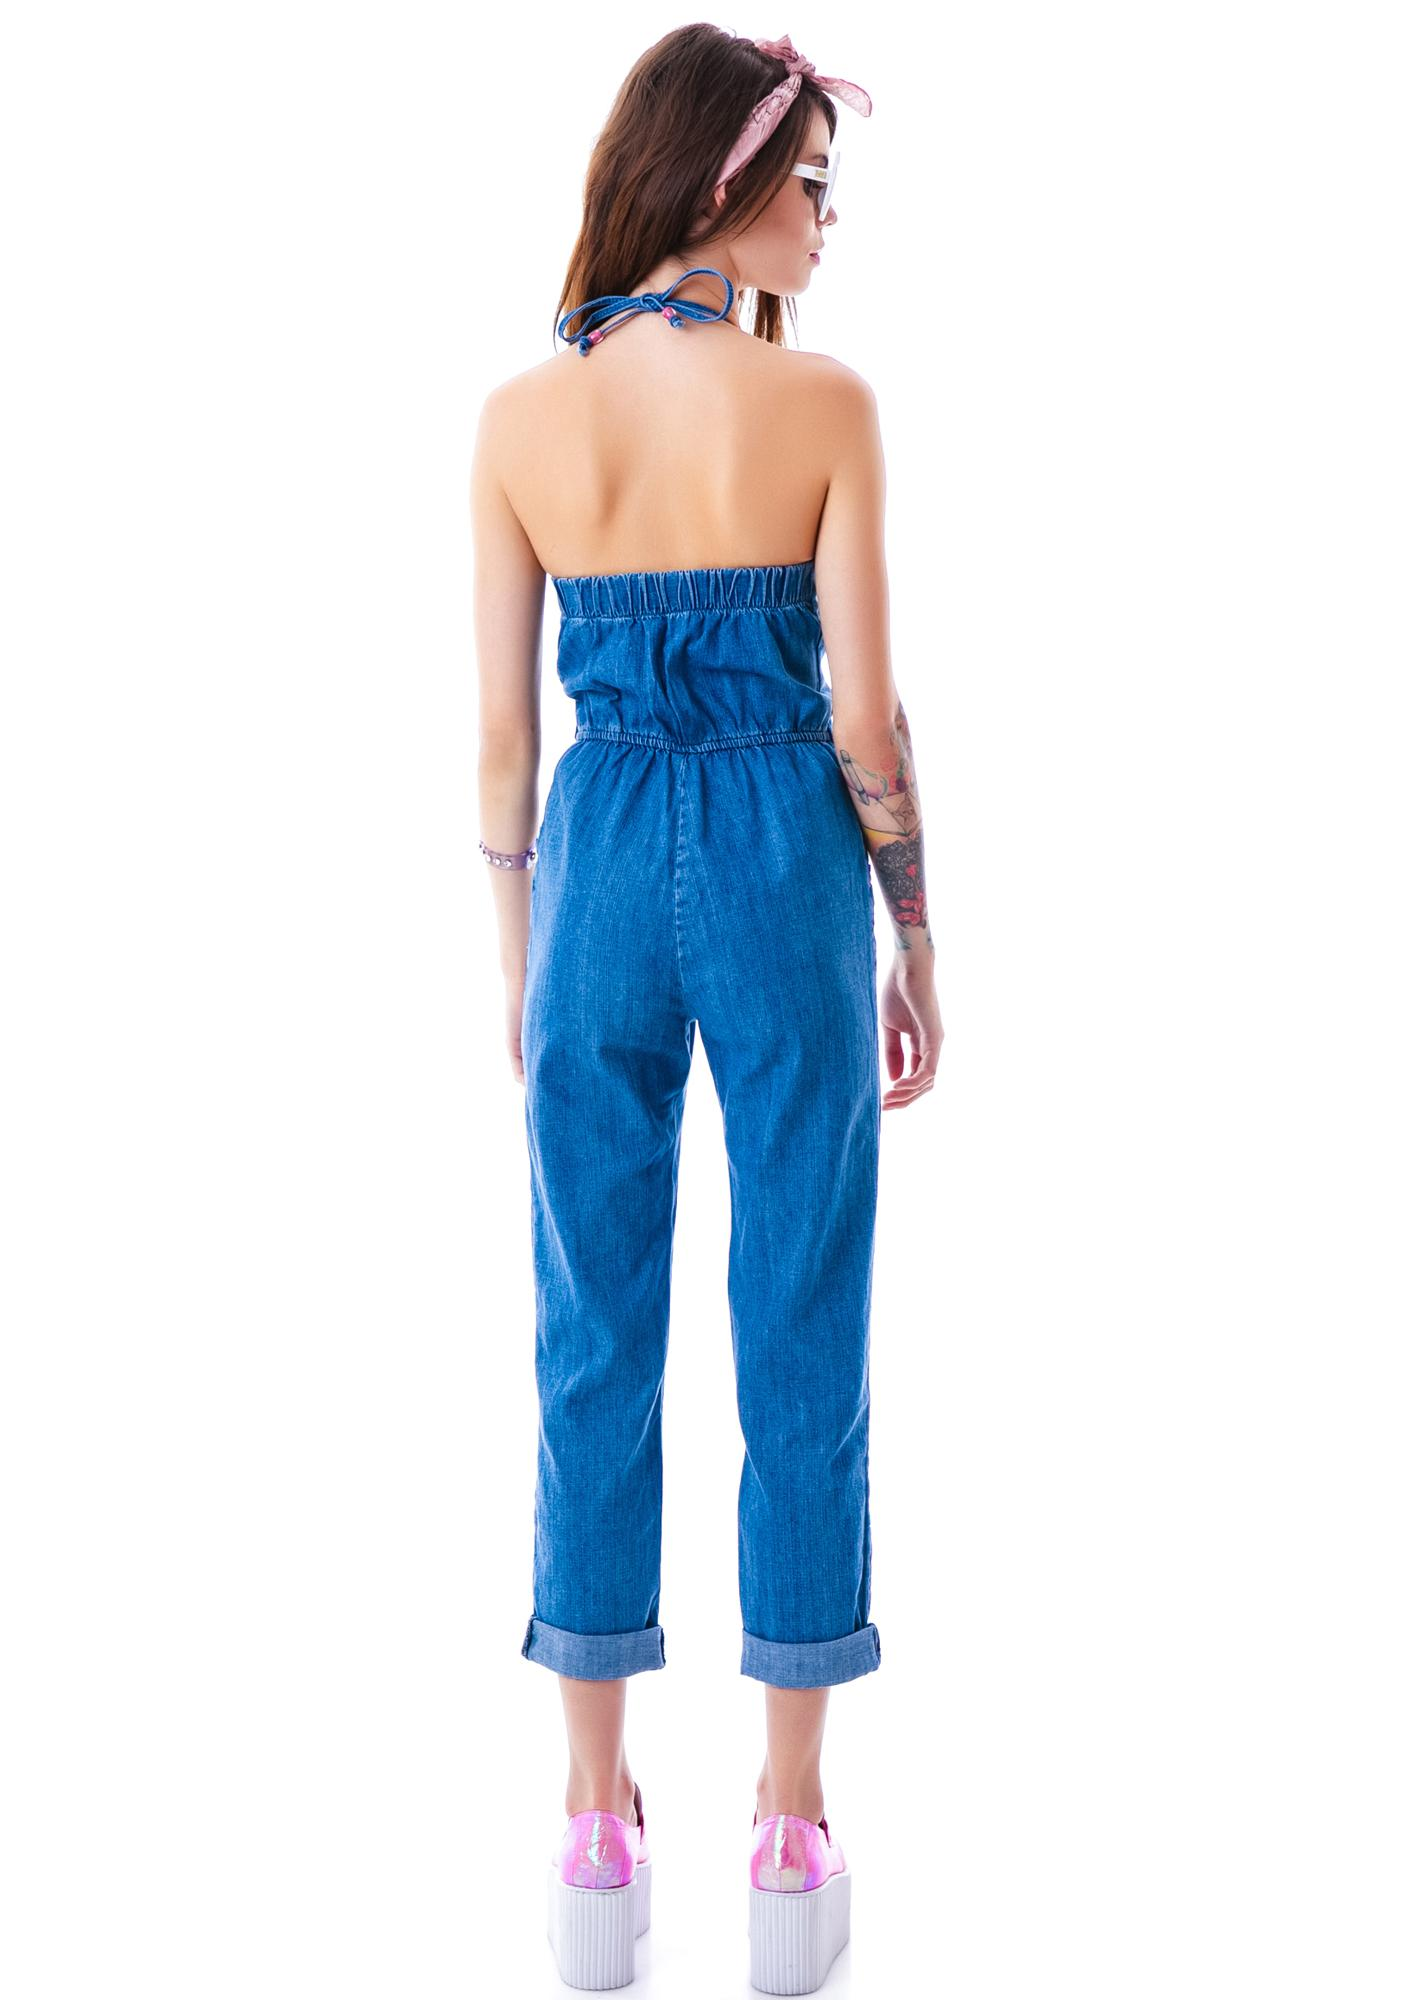 59b9760f6b2c9 ... Wildfox Couture Kiera Daybreak Denim Jumpsuit ...